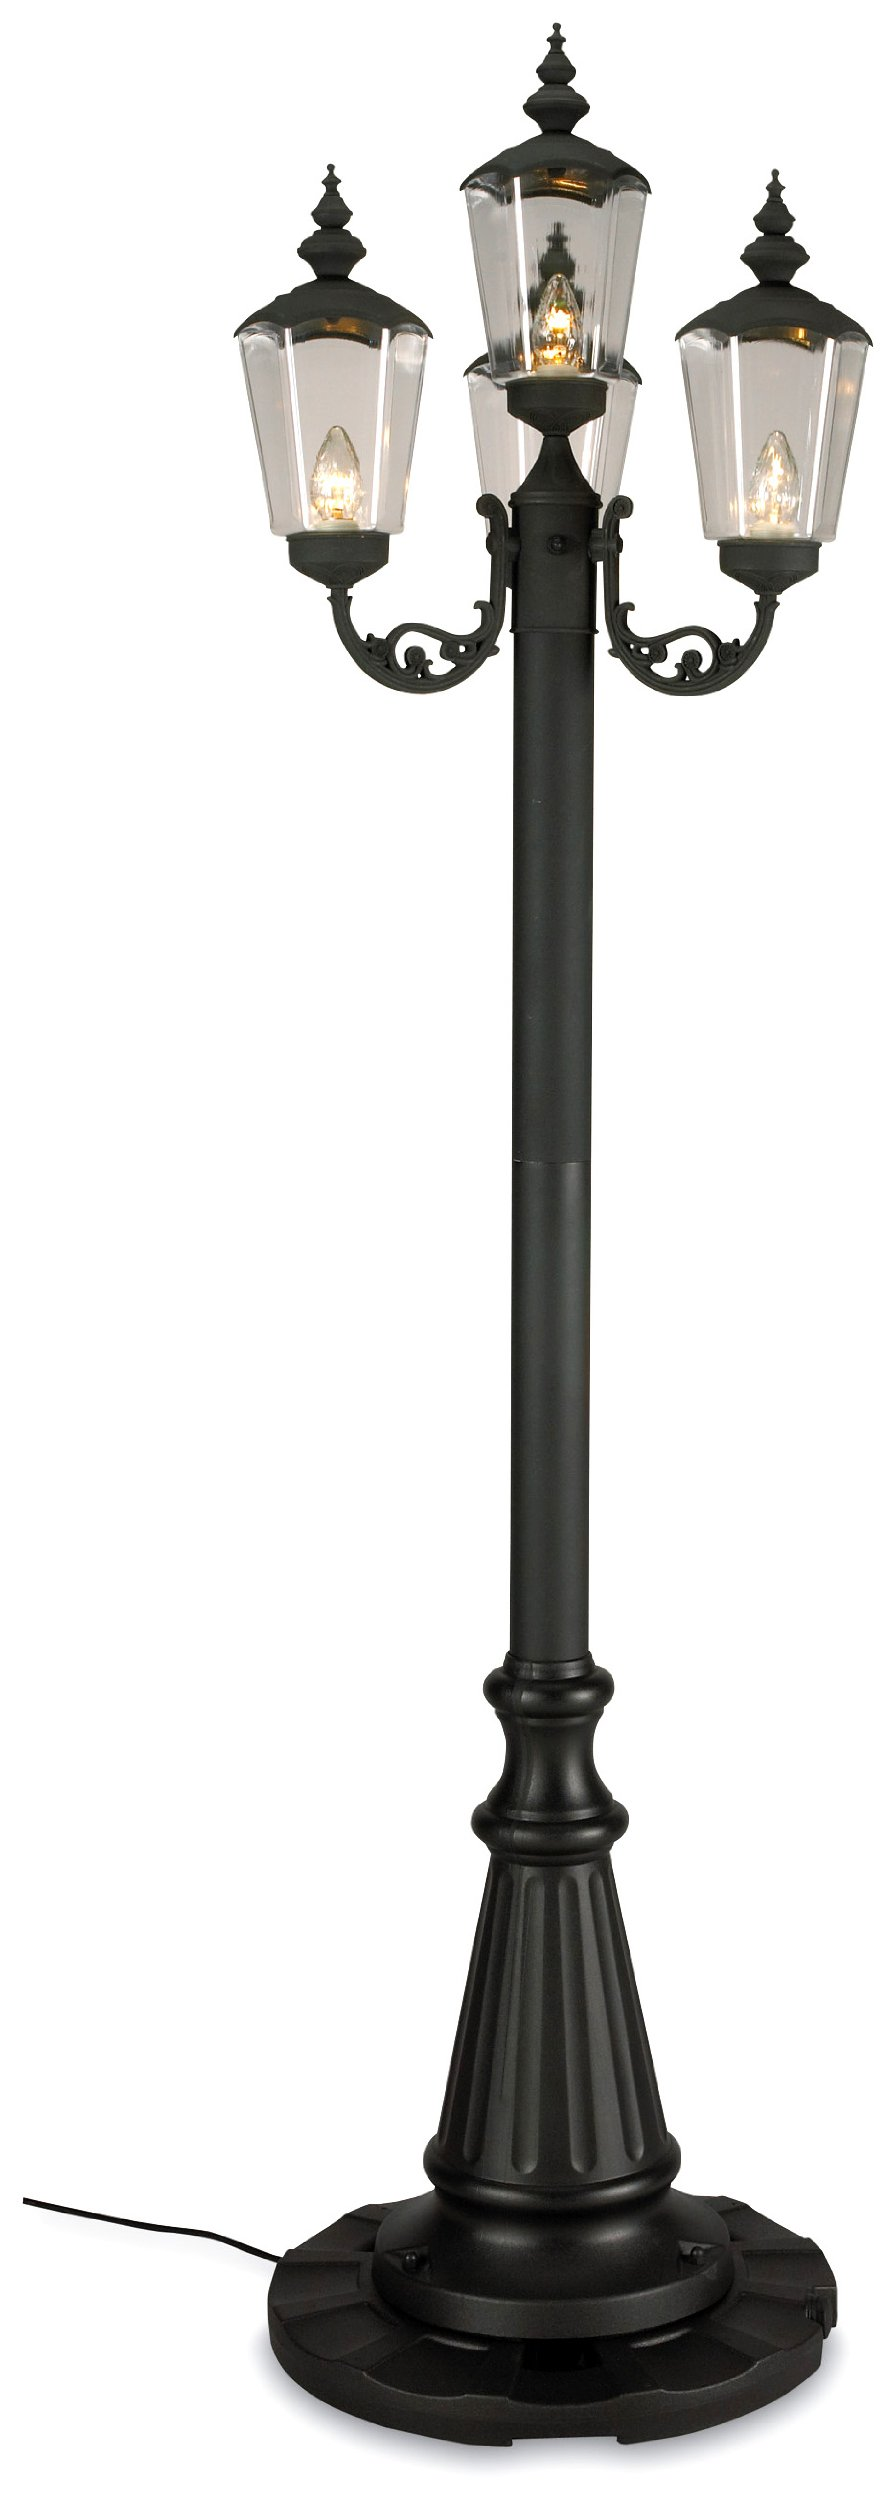 Cambridge 00440 Four Lantern Black Patio Lamp 85-inches Tall by Patio Living Concepts